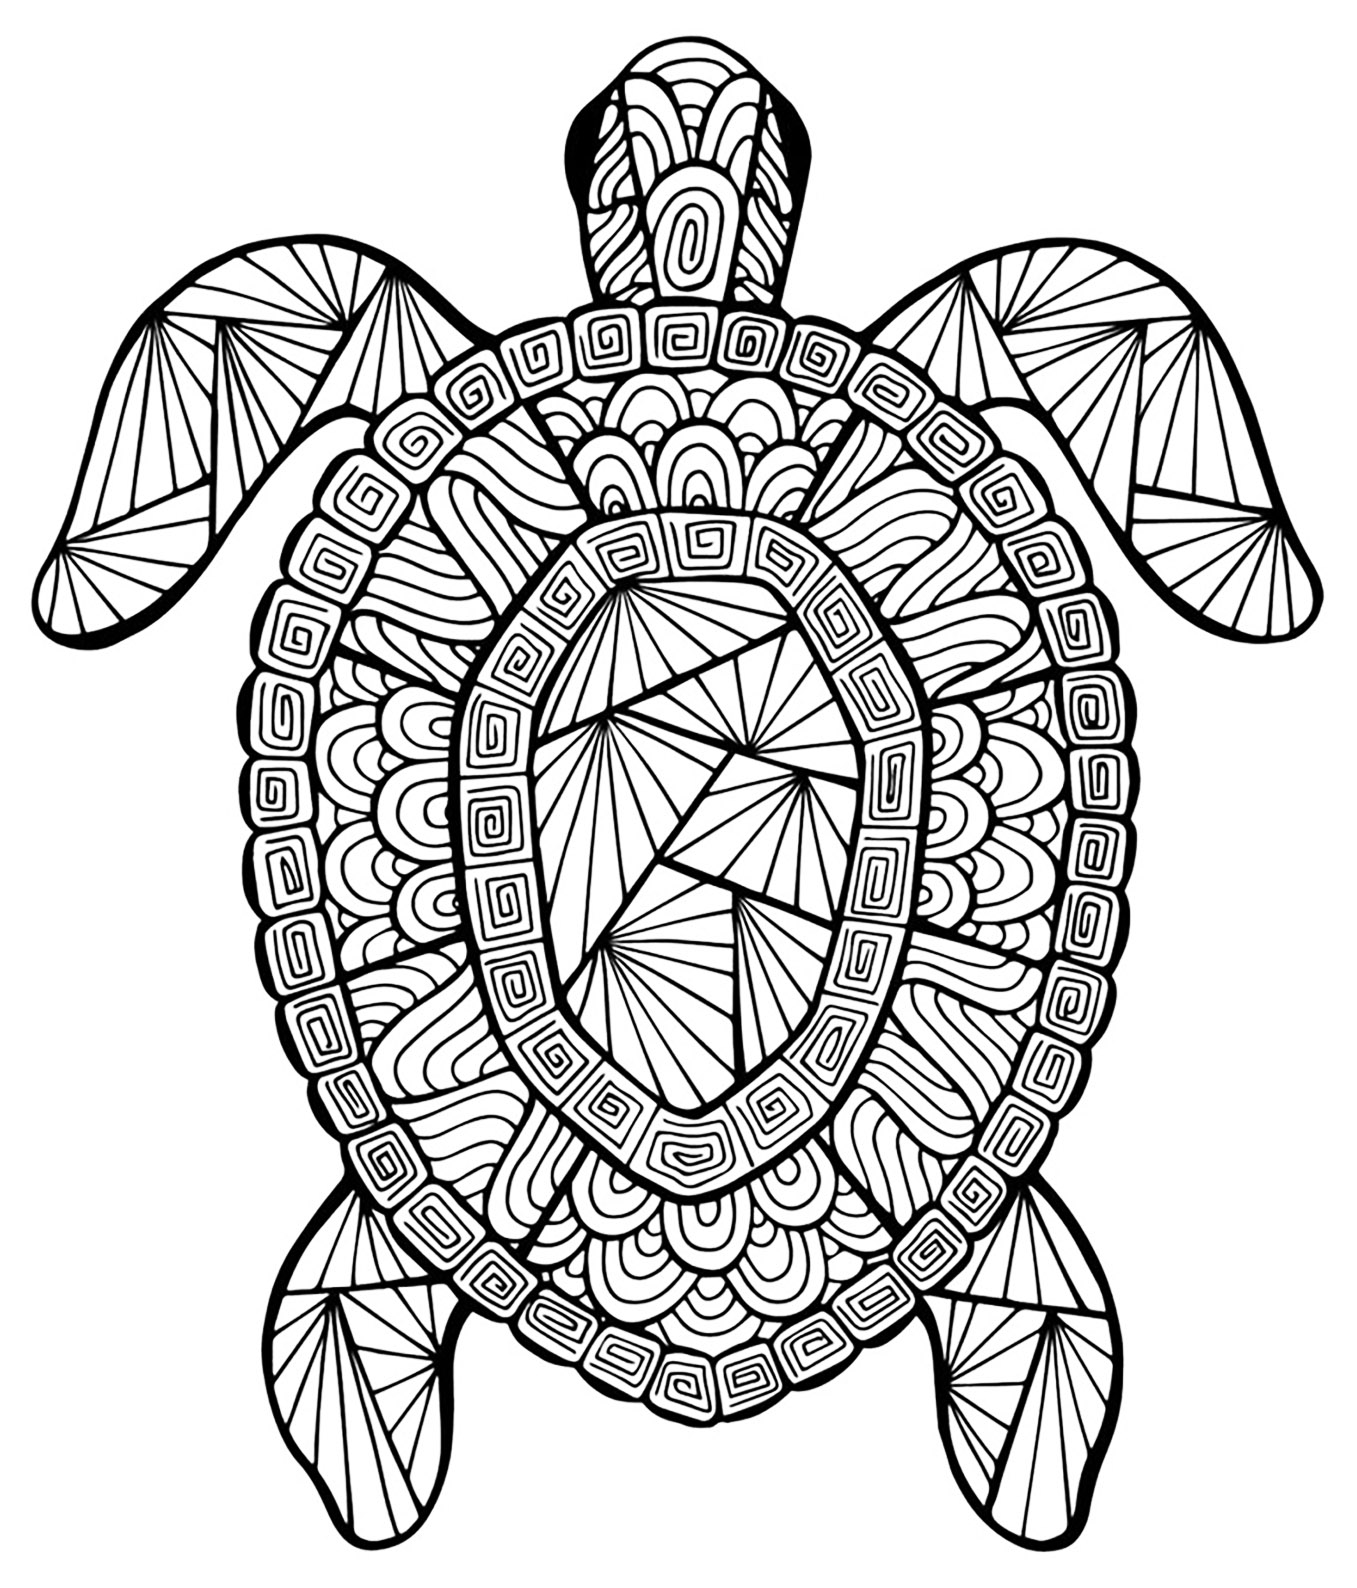 turtle pictures for coloring turtles to print turtles kids coloring pages coloring pictures turtle for